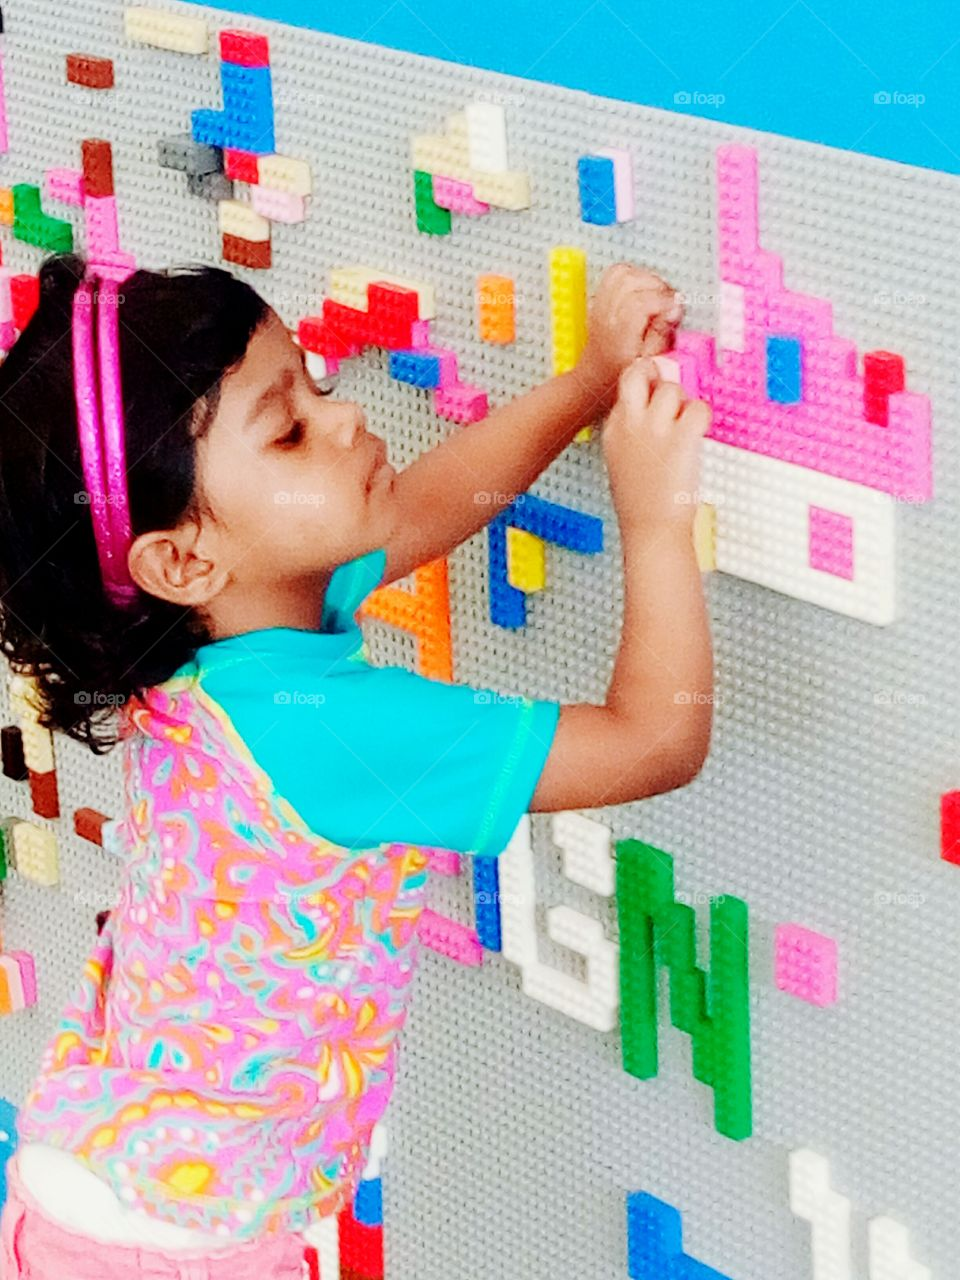 Little girl continues building lego bricks, making a pink house